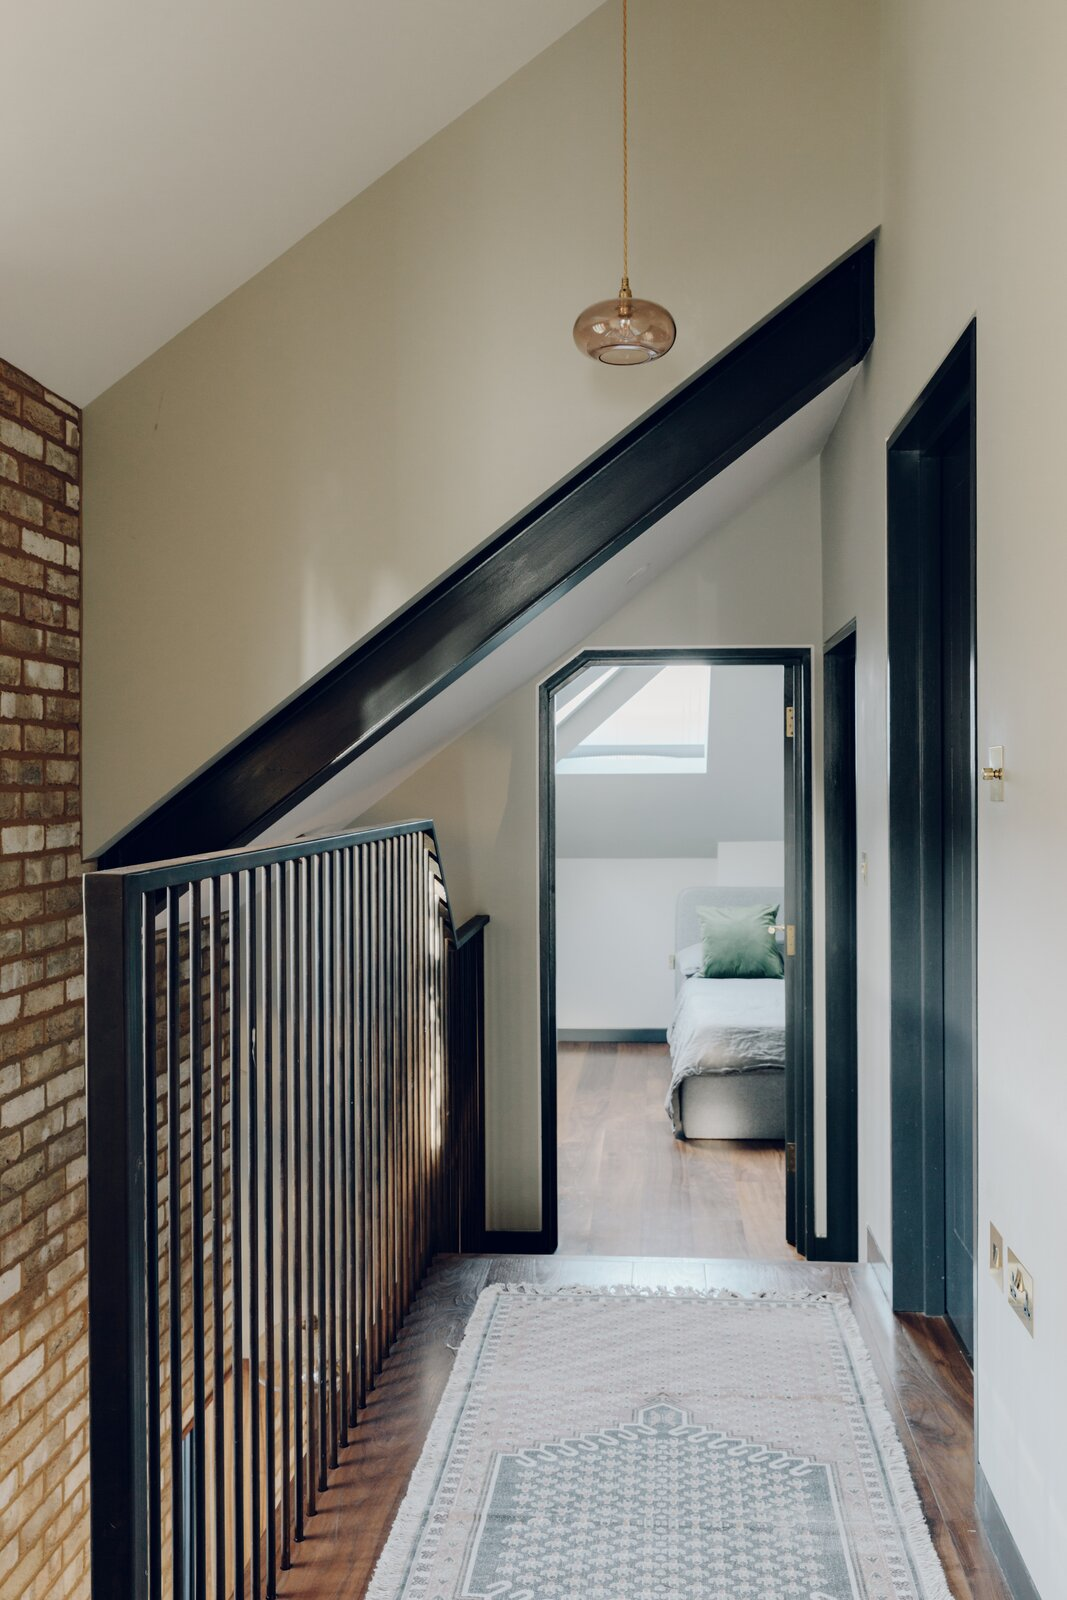 The kitchen stairs lead up to a simple landing, providing access to the remaining three bedrooms. The principal suite is located along the front of the home.  Photo 9 of 13 in An Enchanting, Reimagined Coach House in London Asks £2M